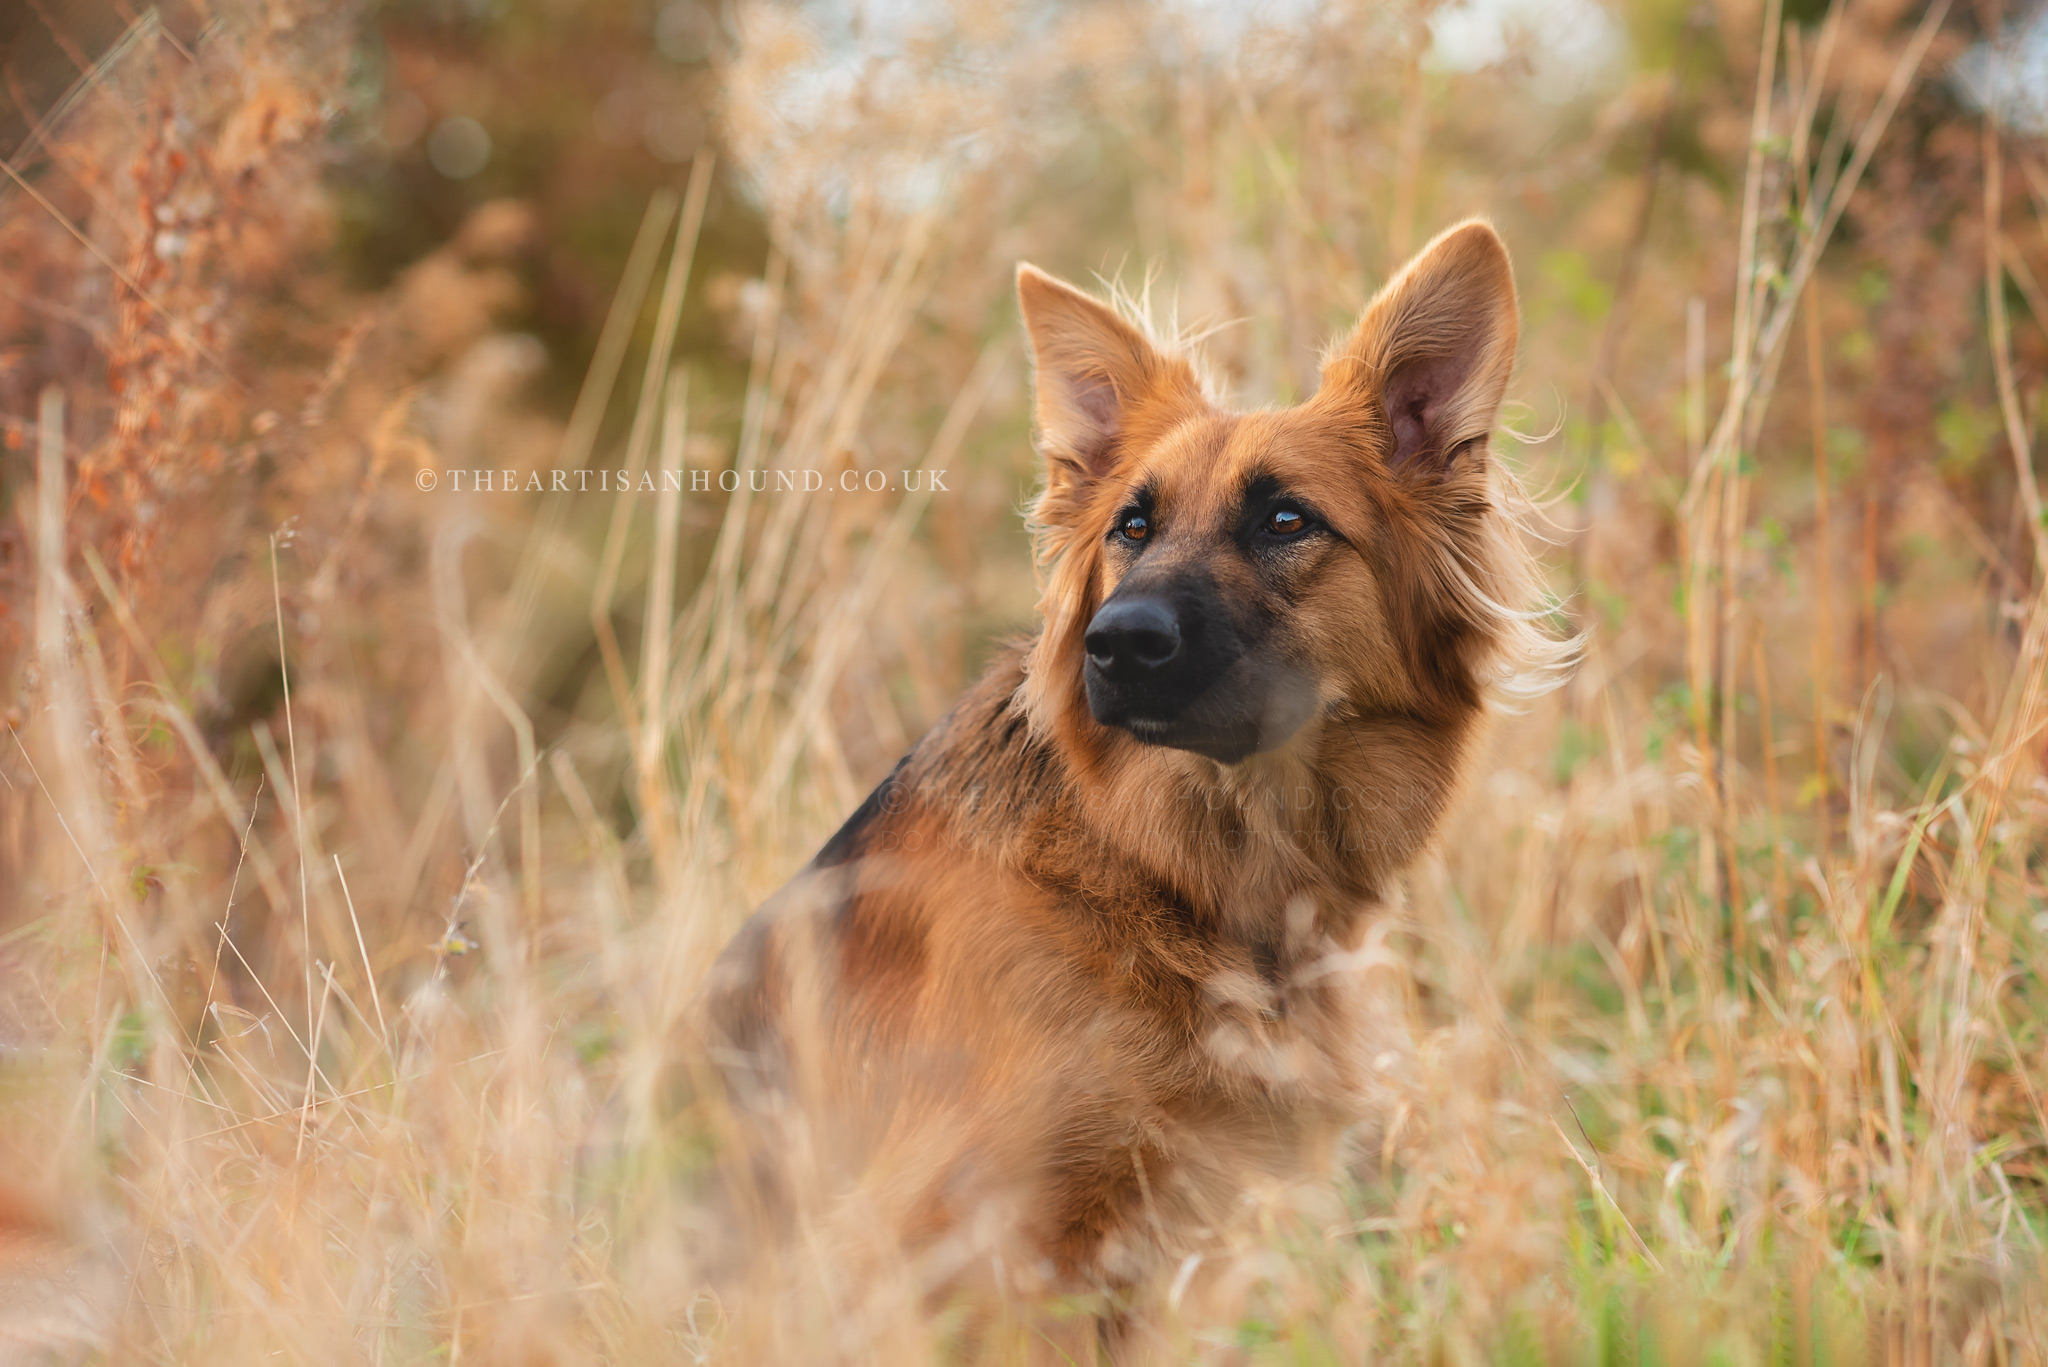 kettering dog photographer 0715